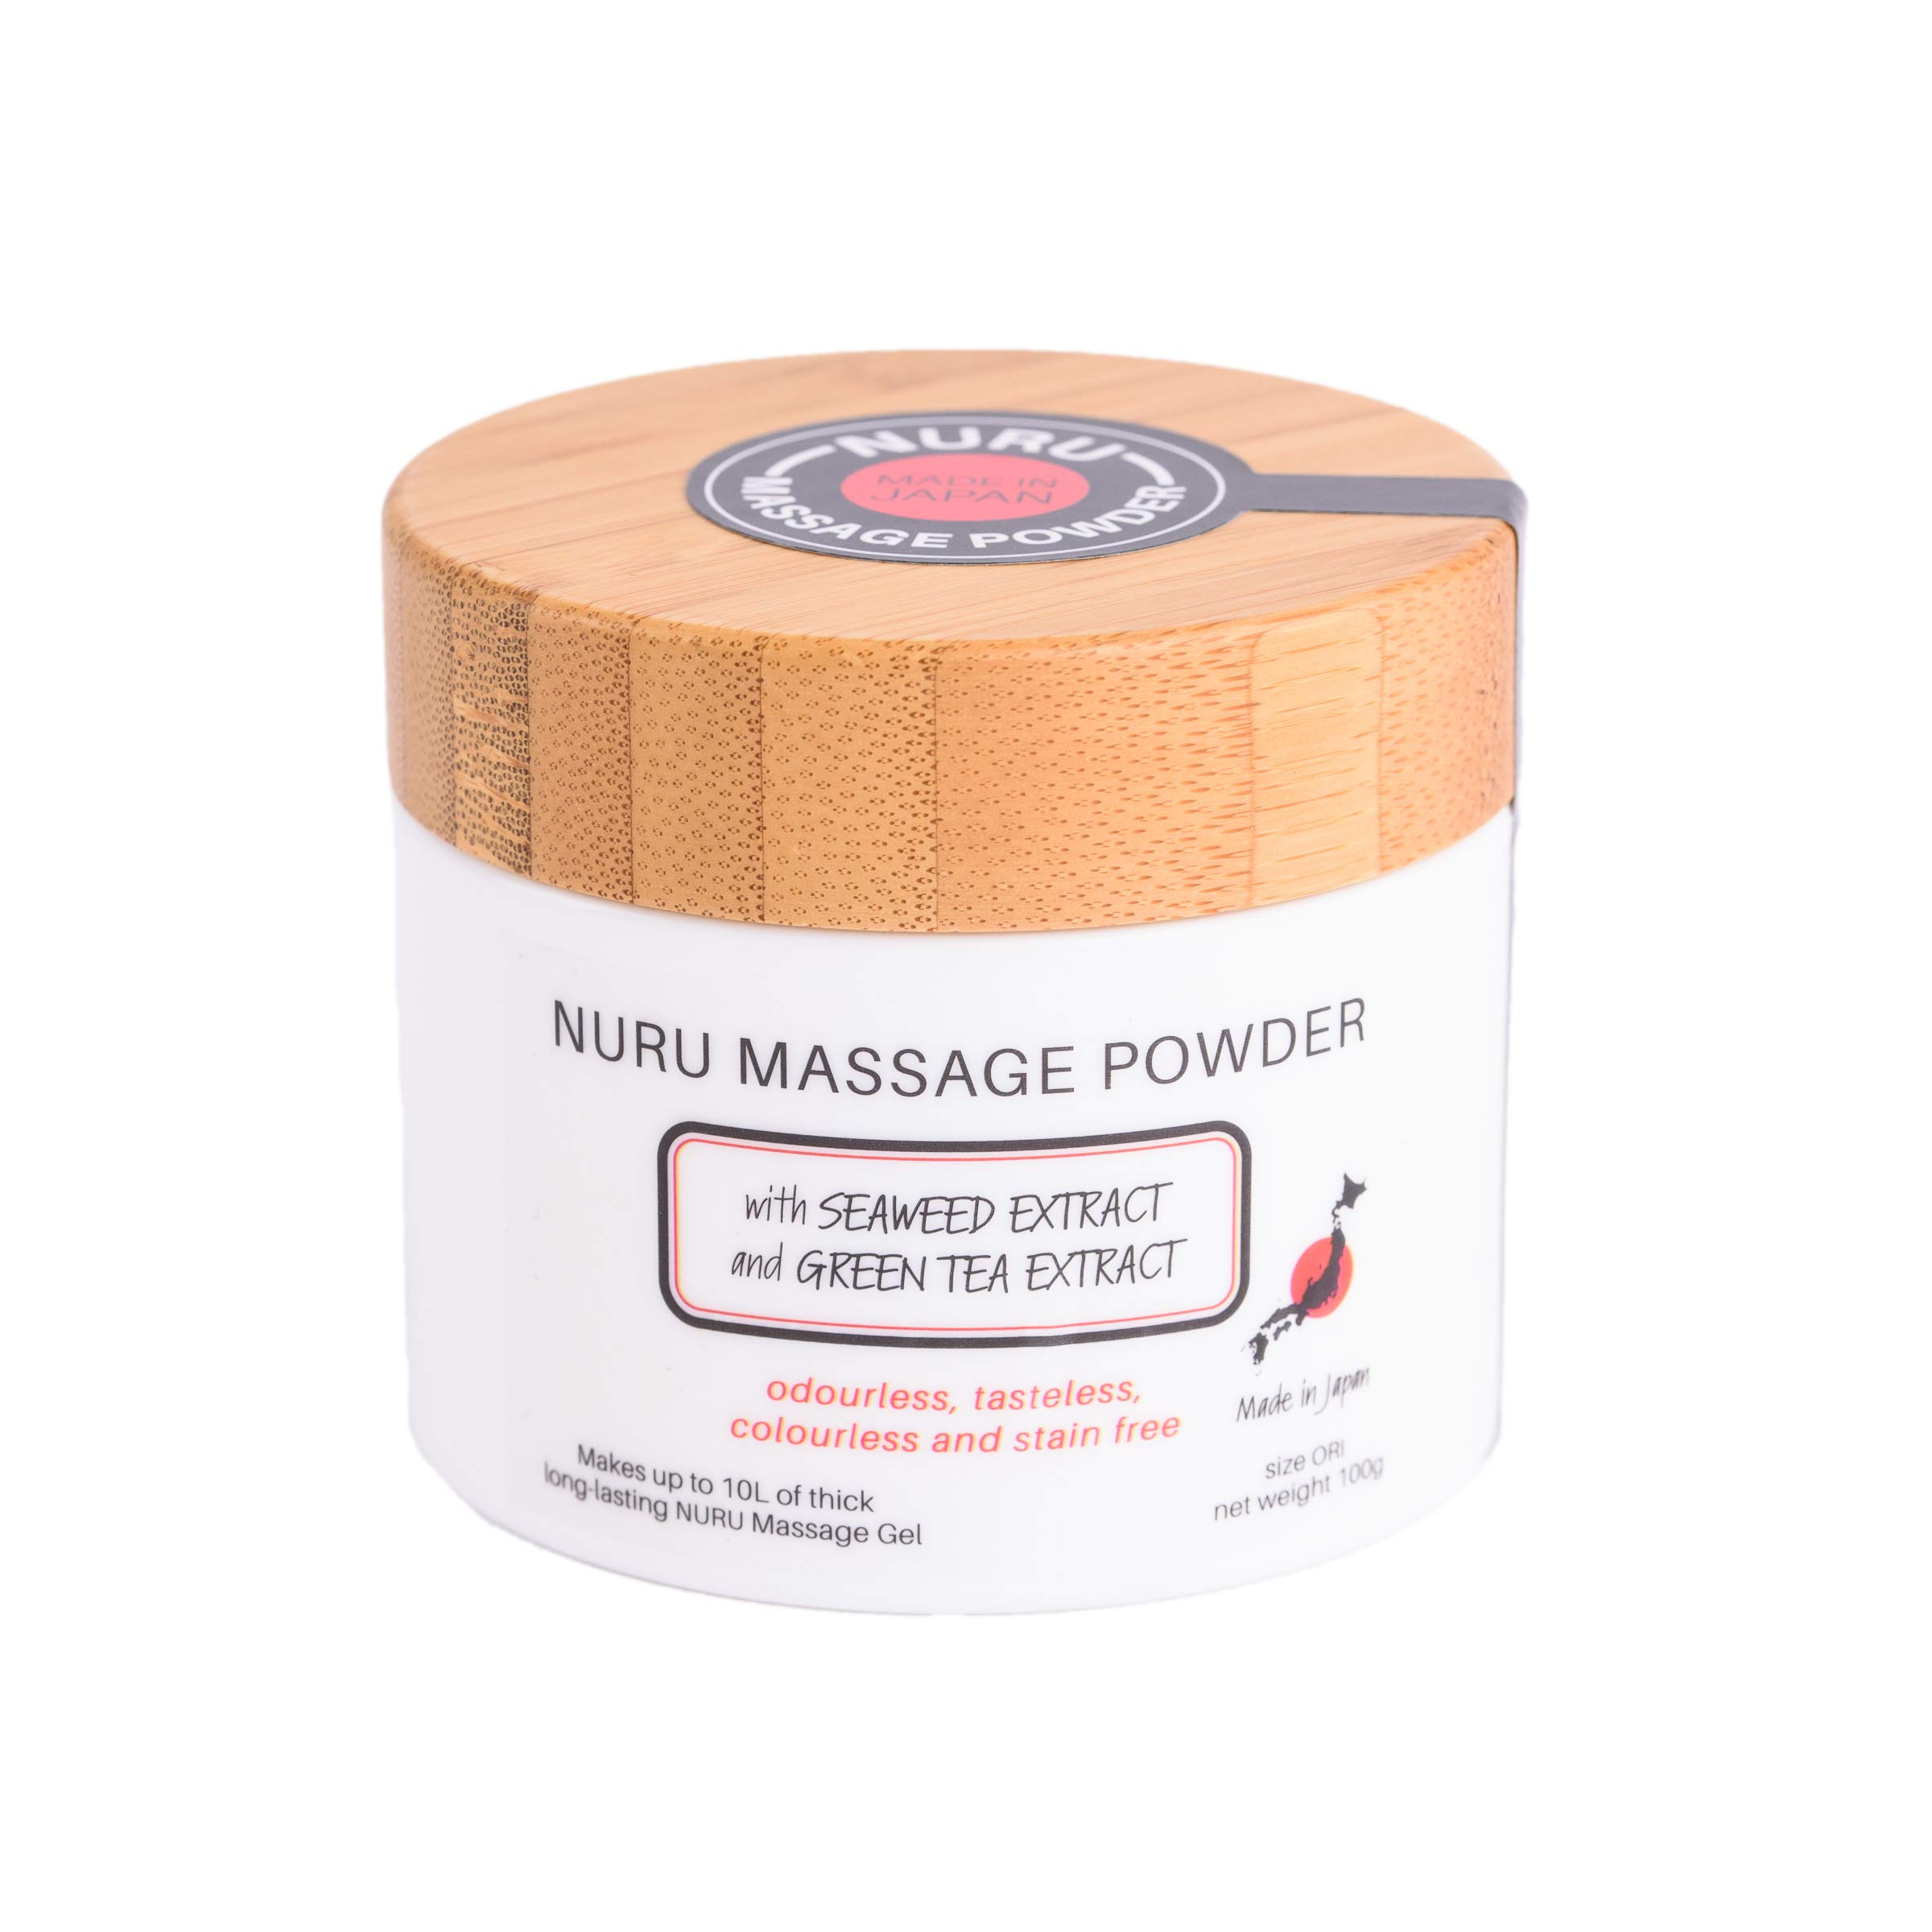 Massage Gel Powder 100g with Seaweed Extract and Green Tea Extract Makes 10L of Massage Gel Made In Japan Paraben and Glycerin Free